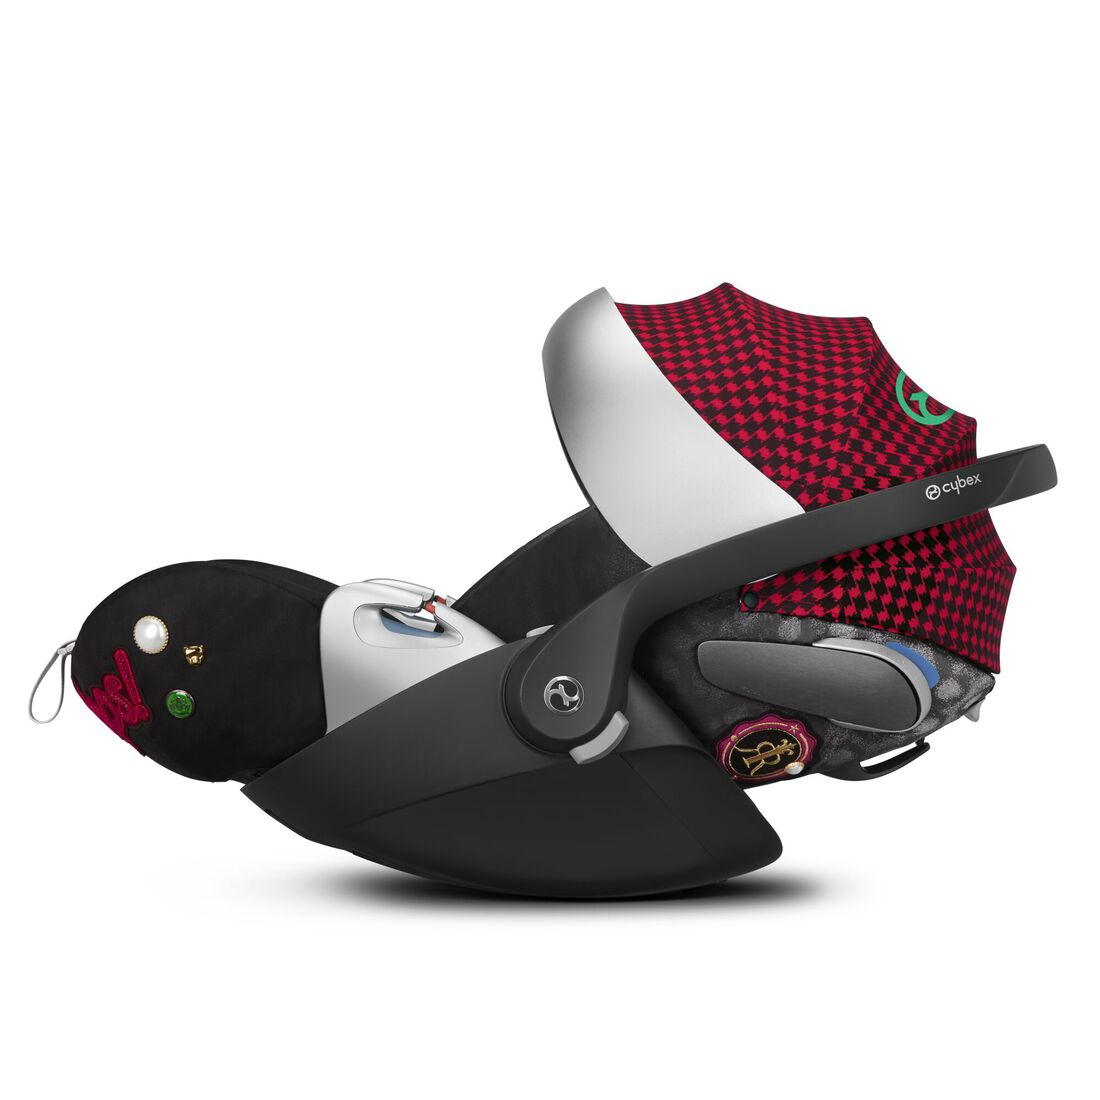 CYBEX Cloud Z i-Size - Rebellious in Rebellious large image number 1